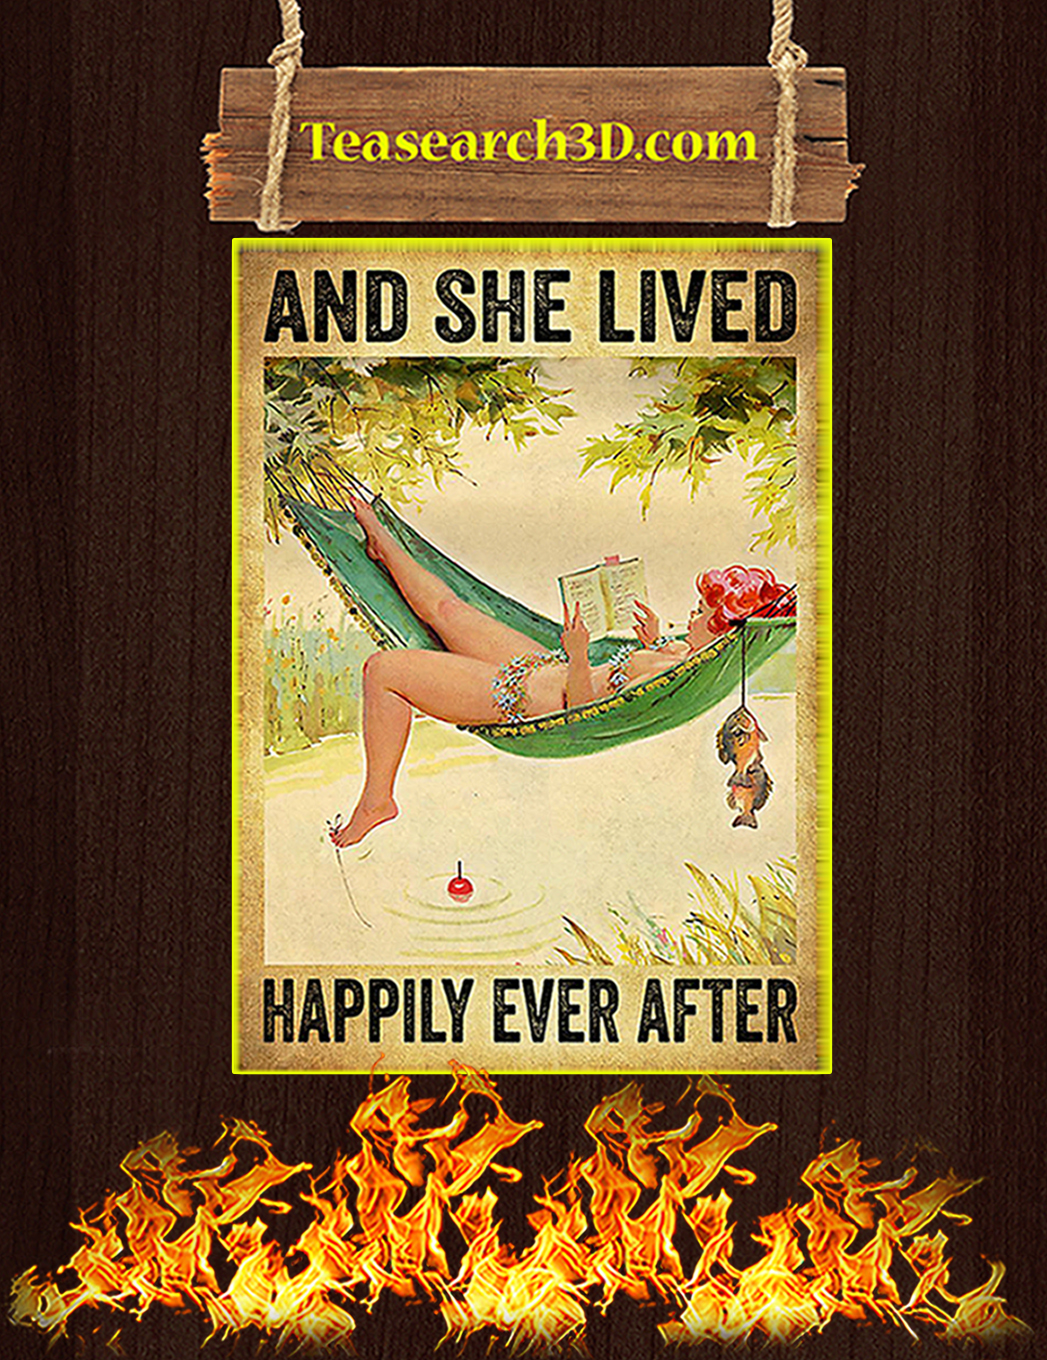 Fishing and she lived happily ever after poster A1